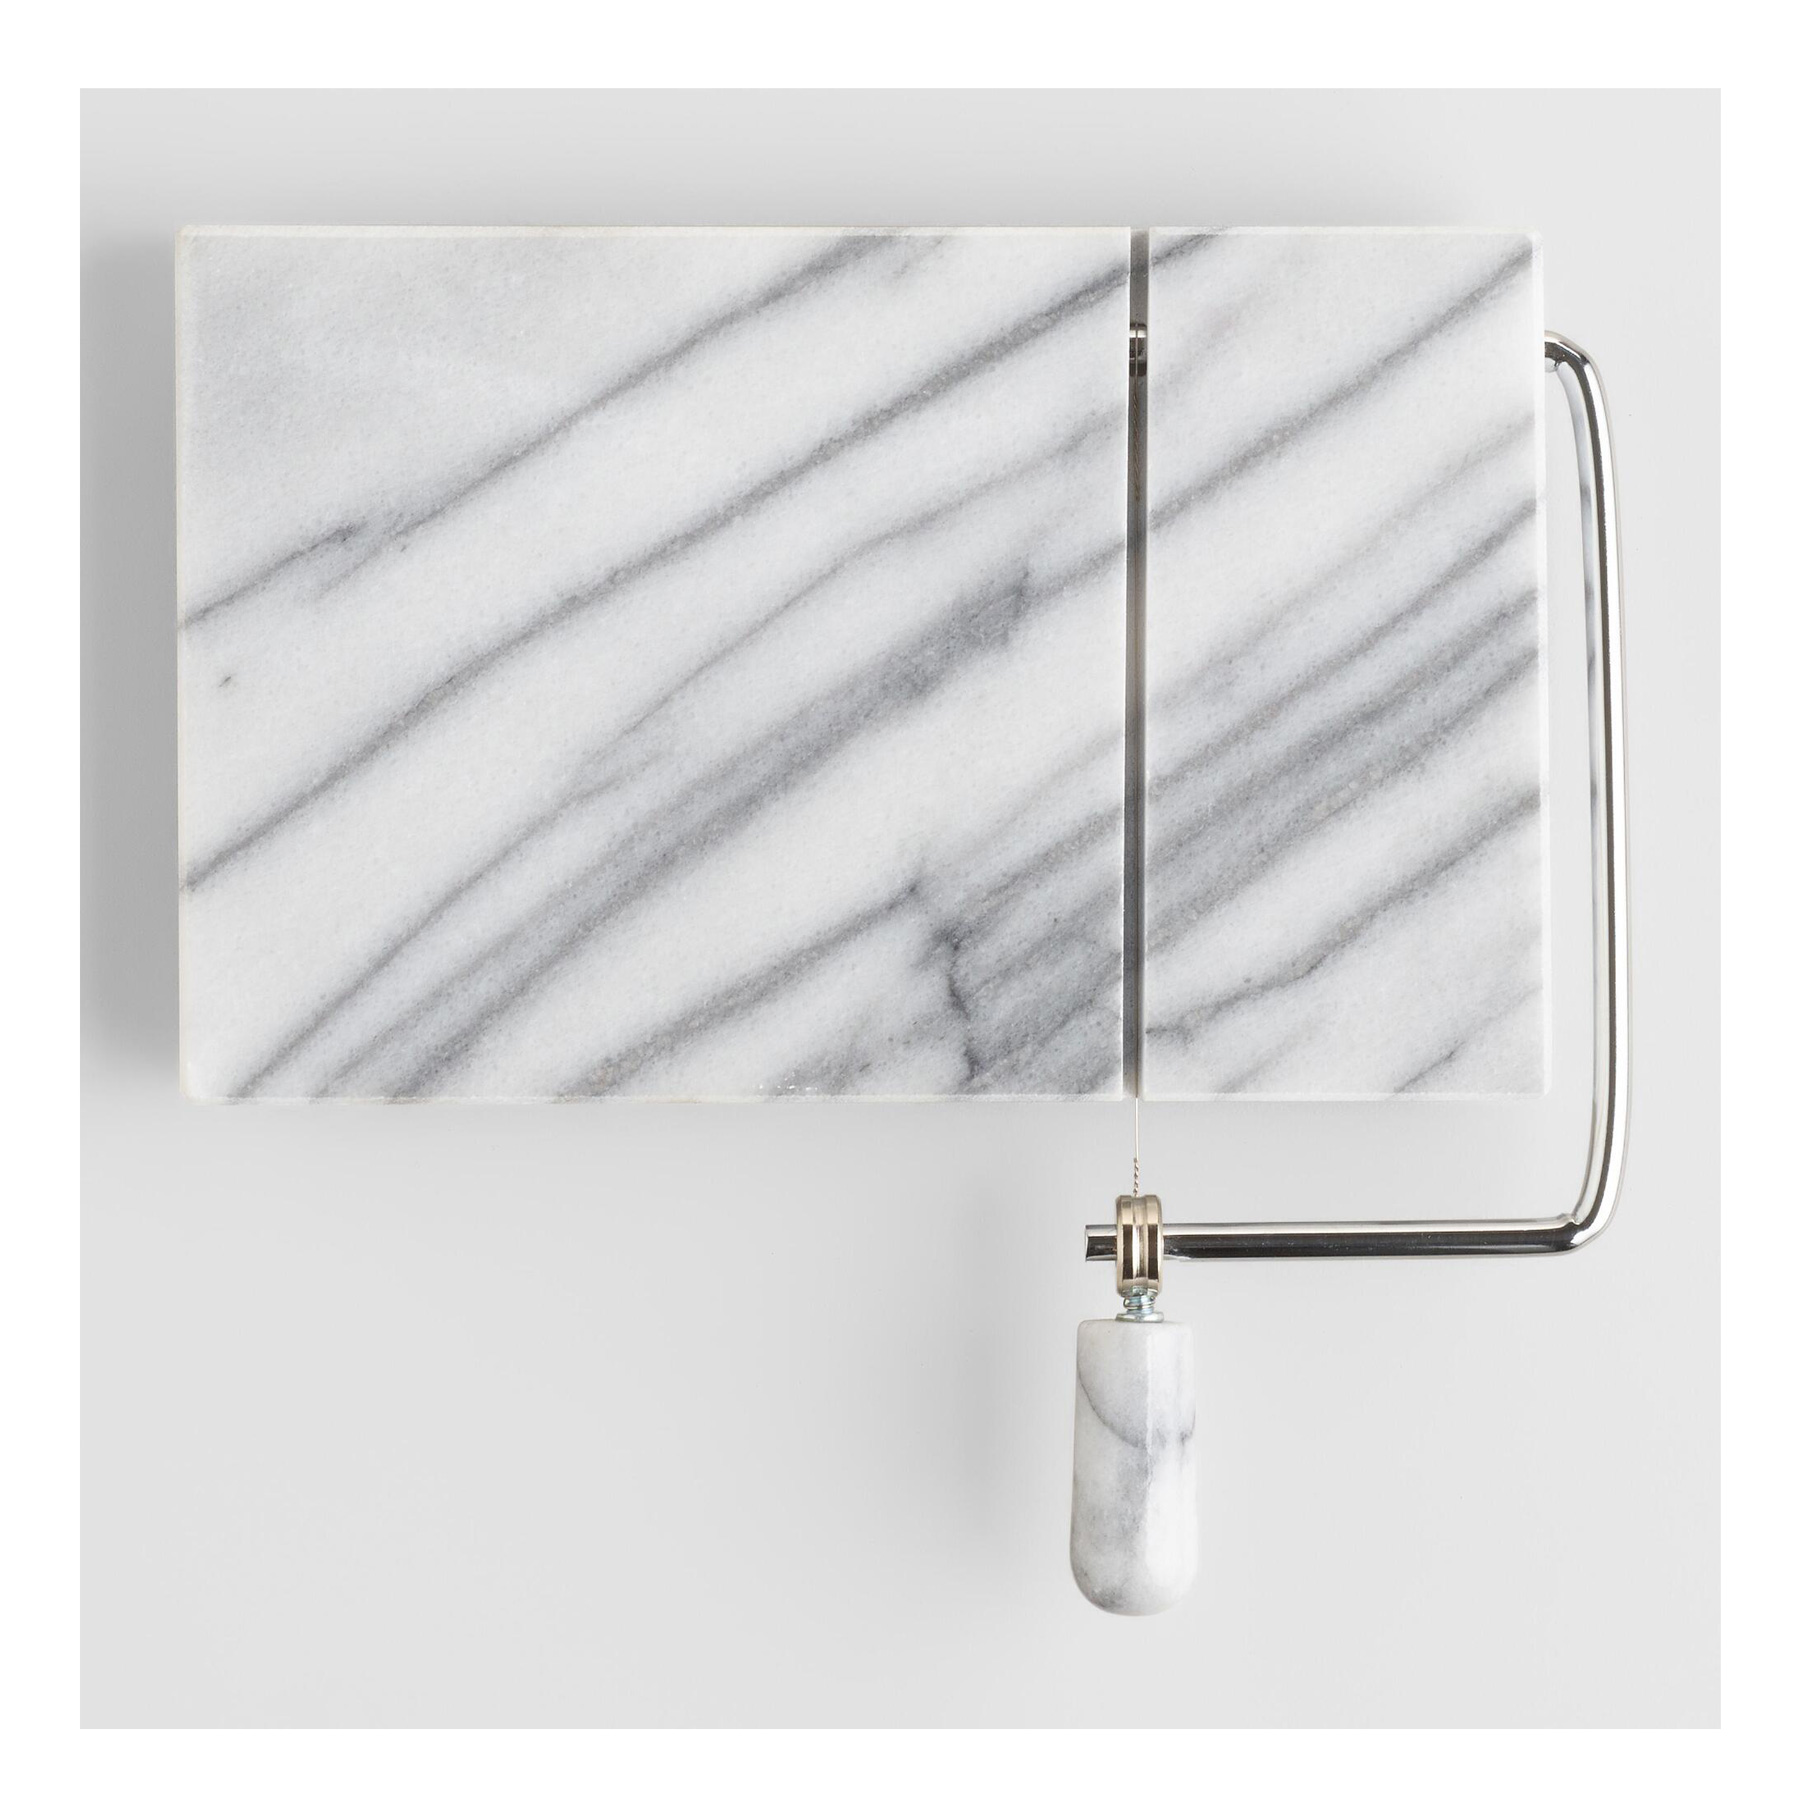 Cheap Christmas Gifts Under $25: World Market marble board with wire cheese cutter